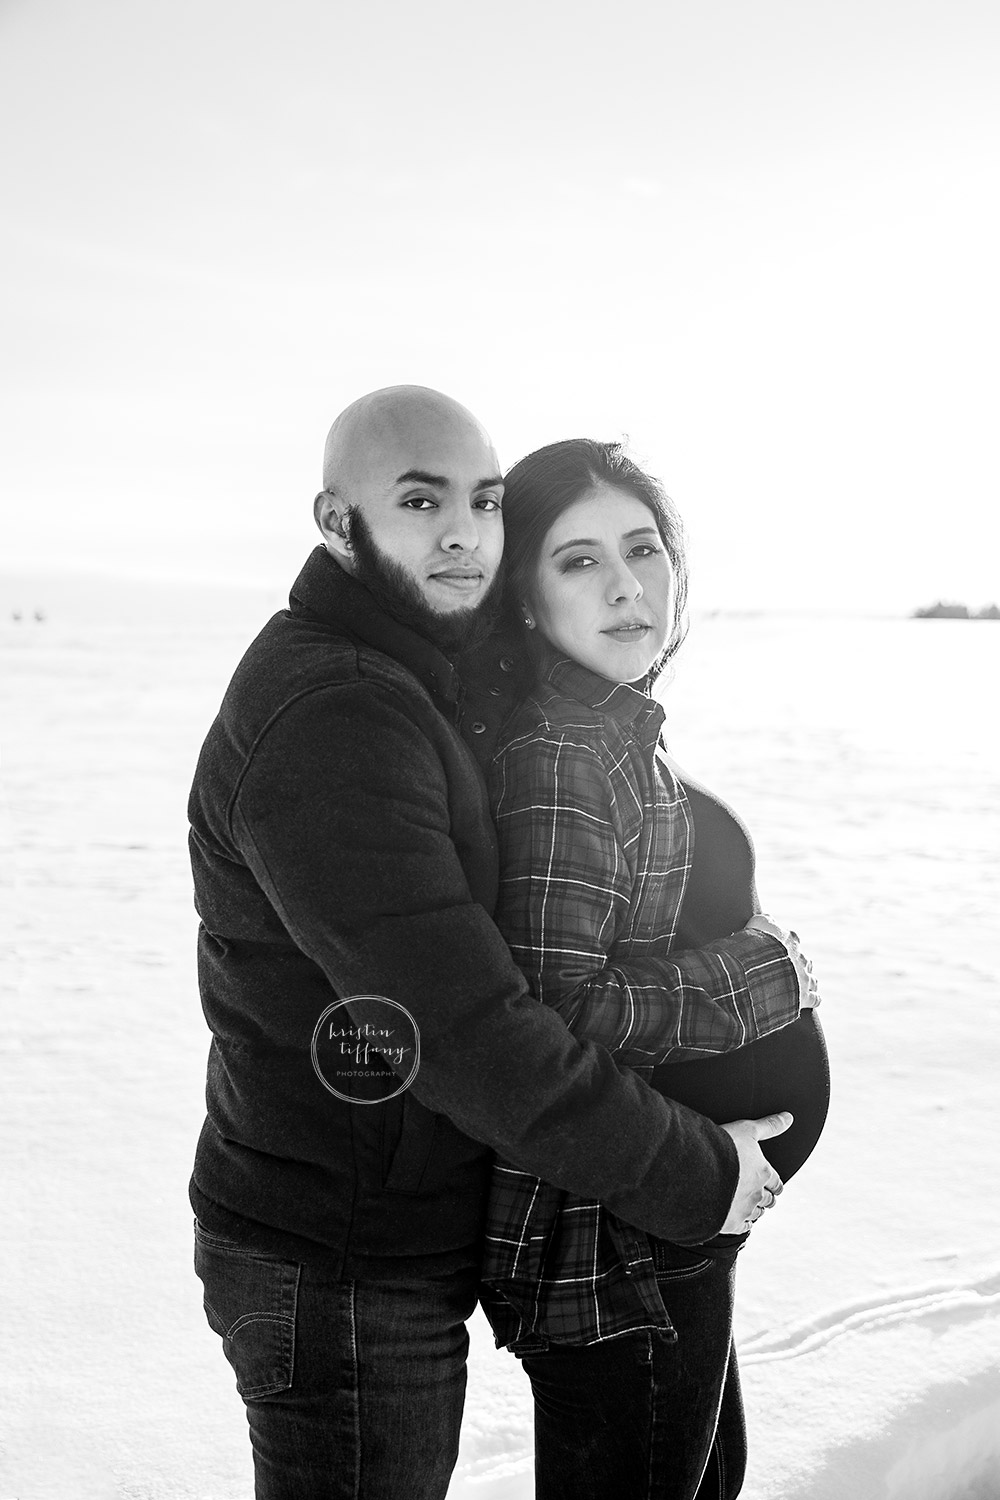 a maternity photo taken in the snow